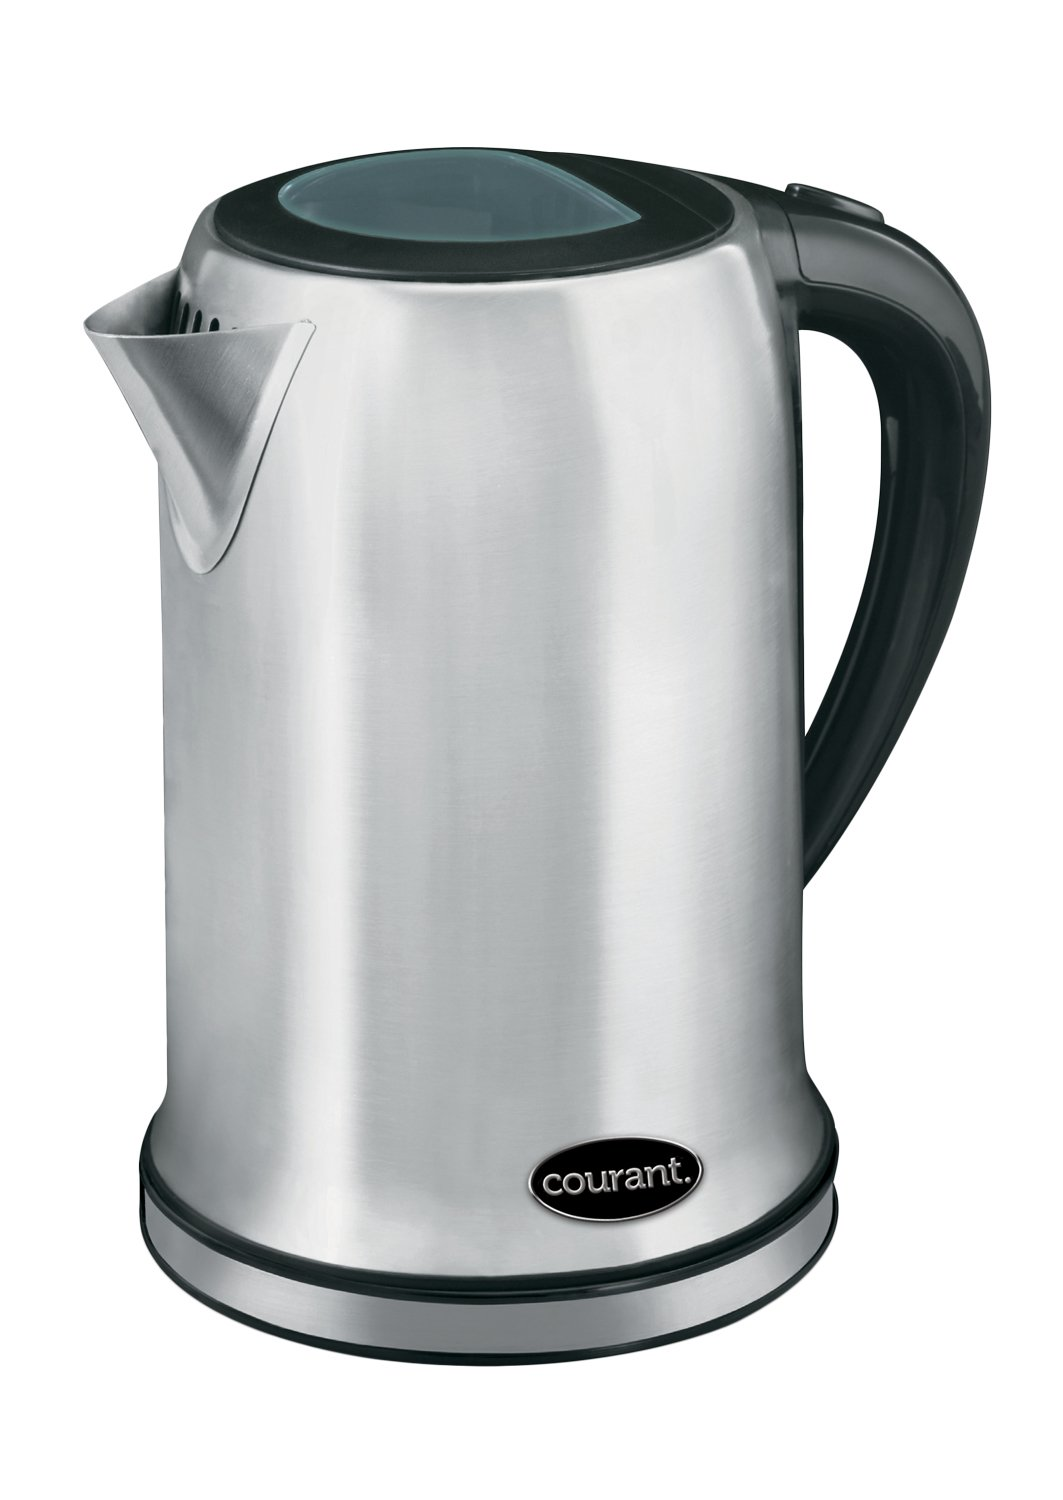 Courant 1.7 Liter Cordless Electric Kettle, Stainless Steel Electric Tea Kettle KEC176ST